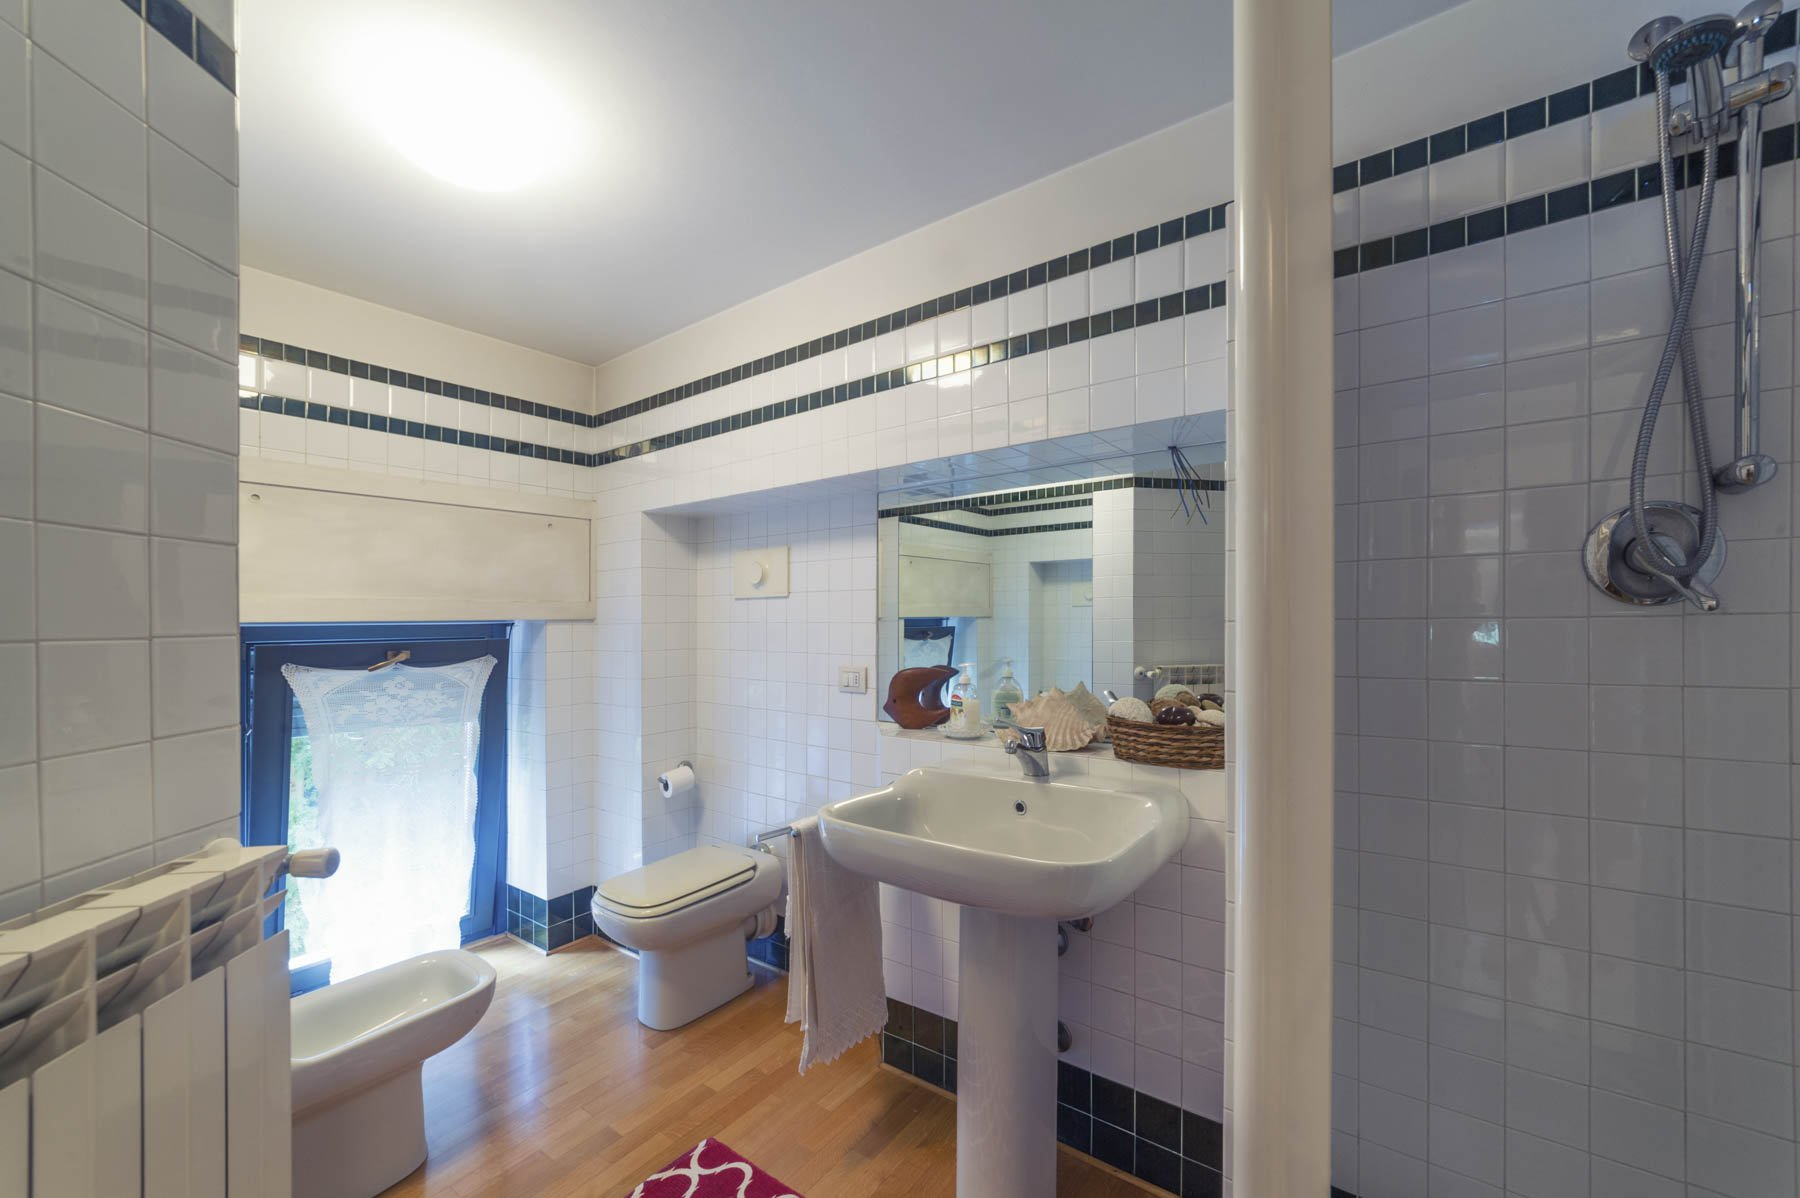 Prestigious apartment for sale in Castelletto Ticino - bathroom